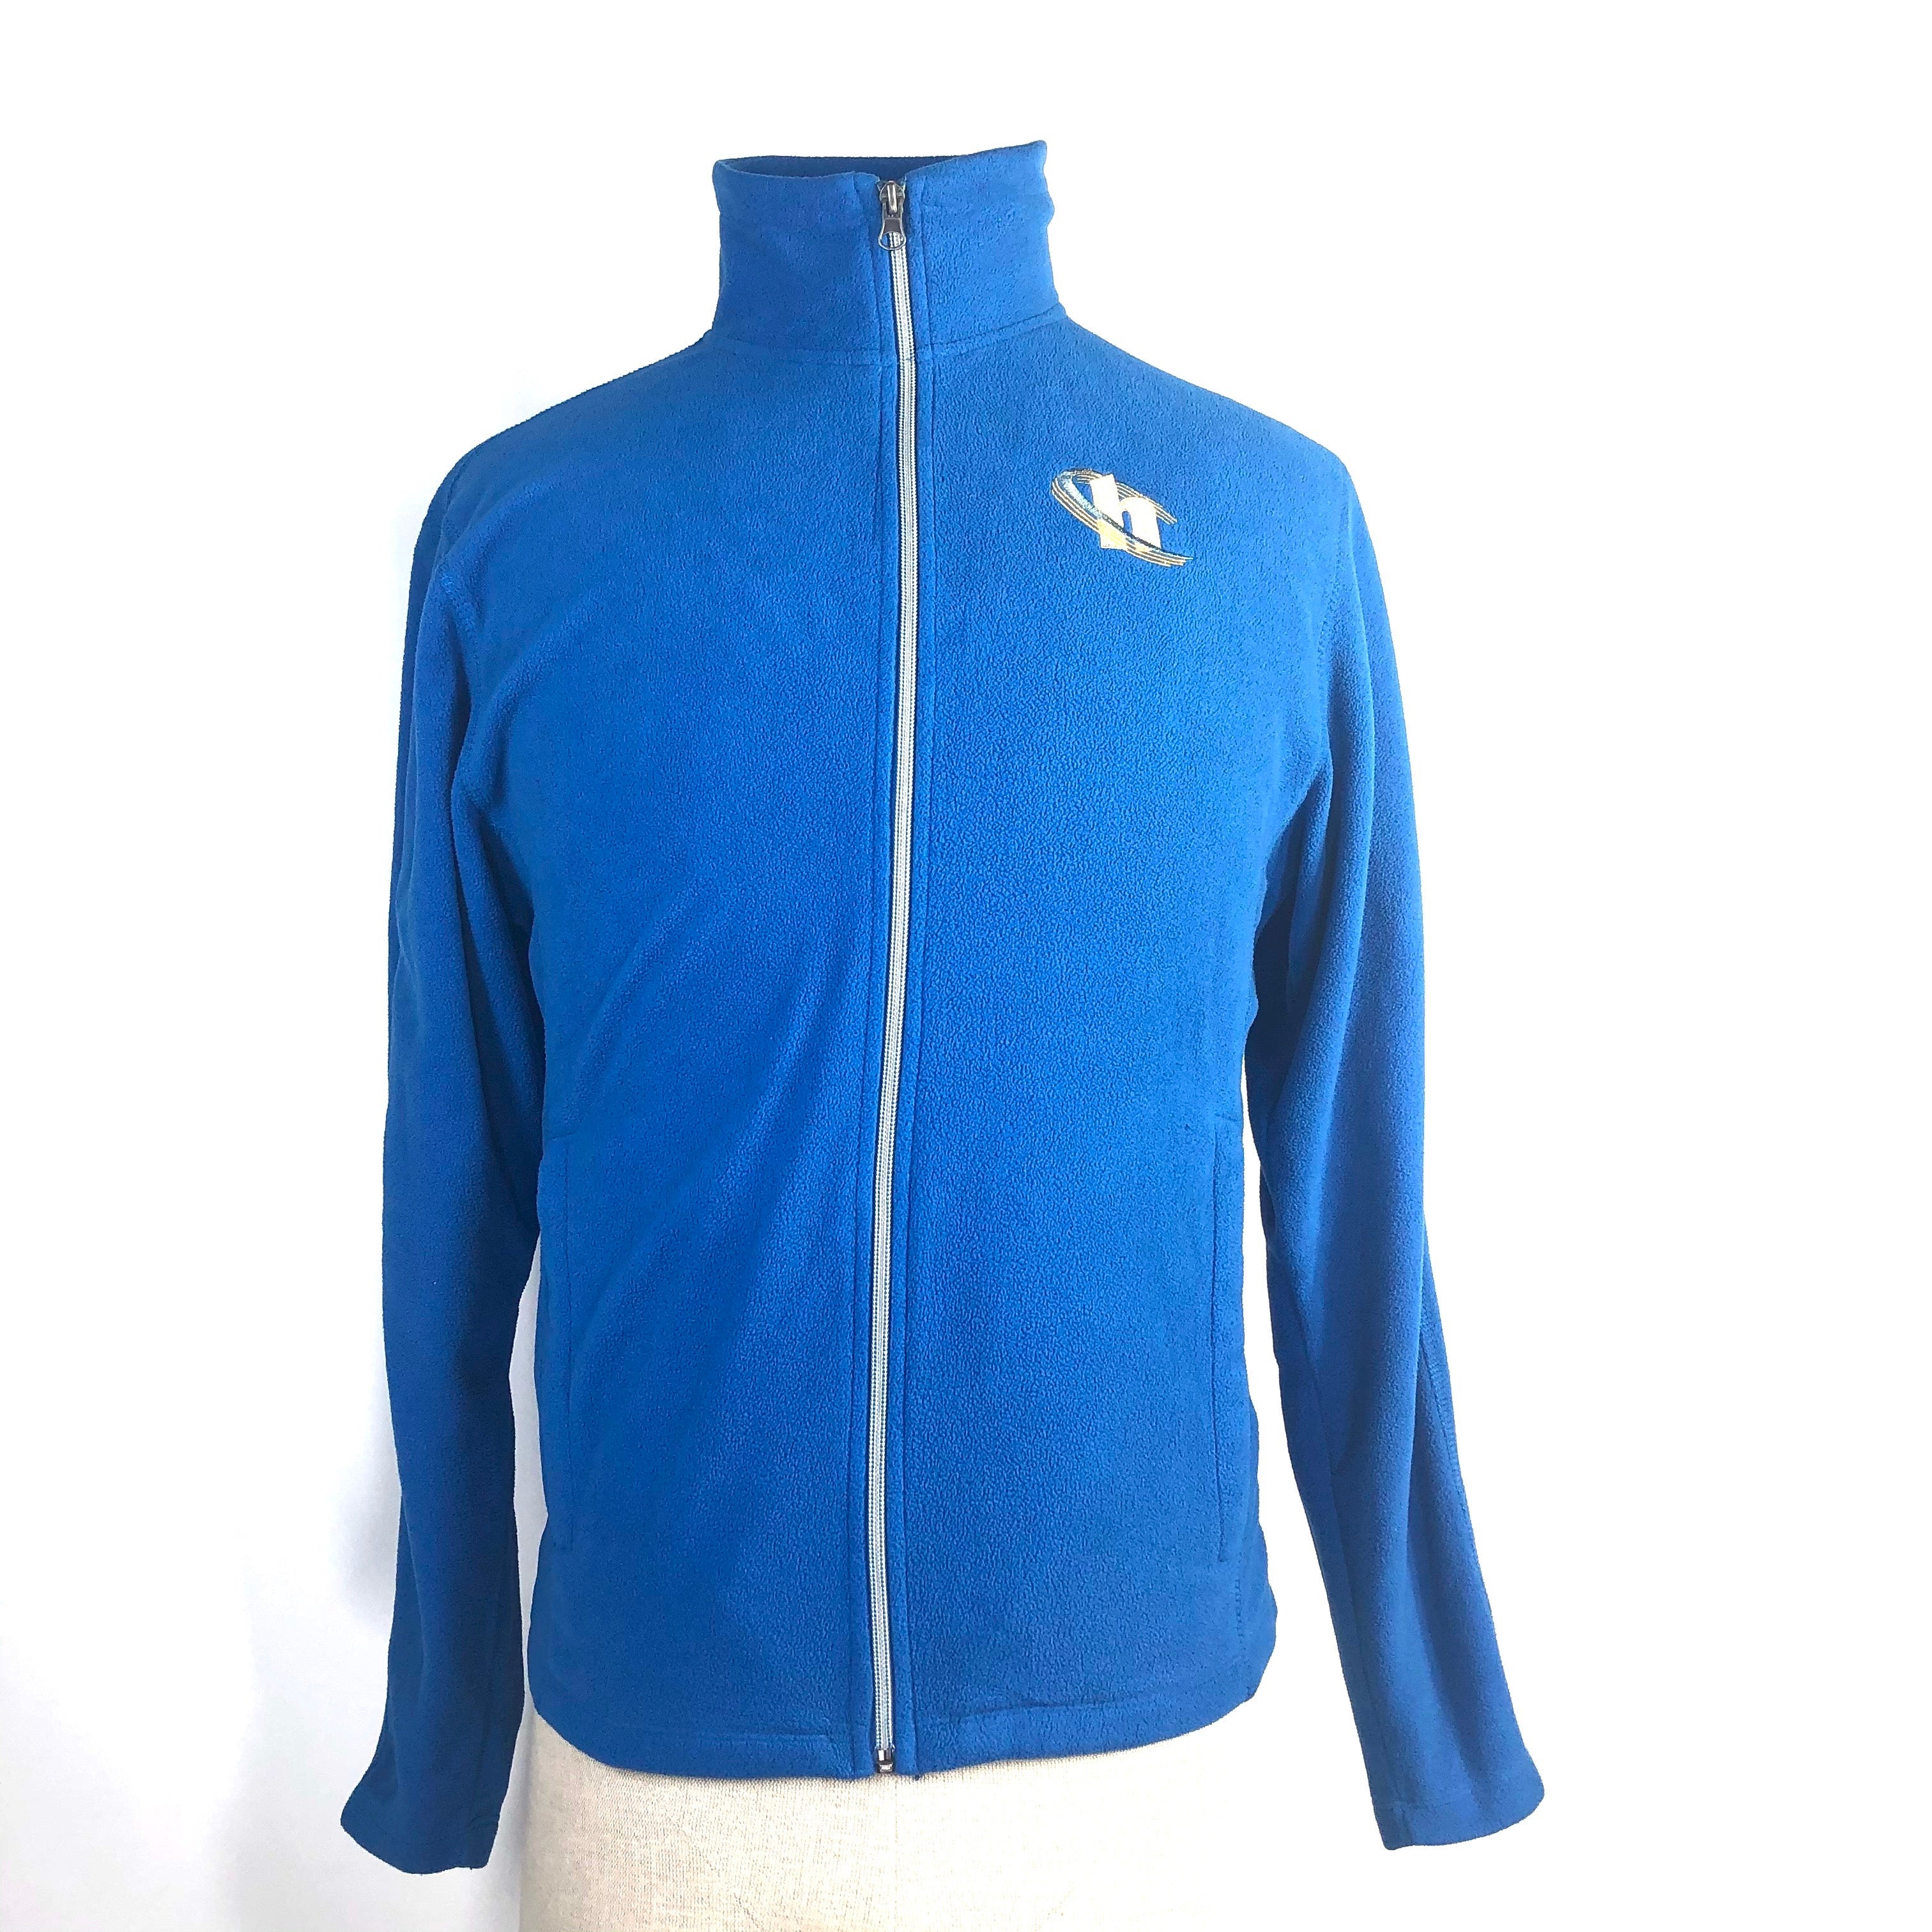 SILICON VALLEY: Blue Hooli Fleece Zip Up Jacket